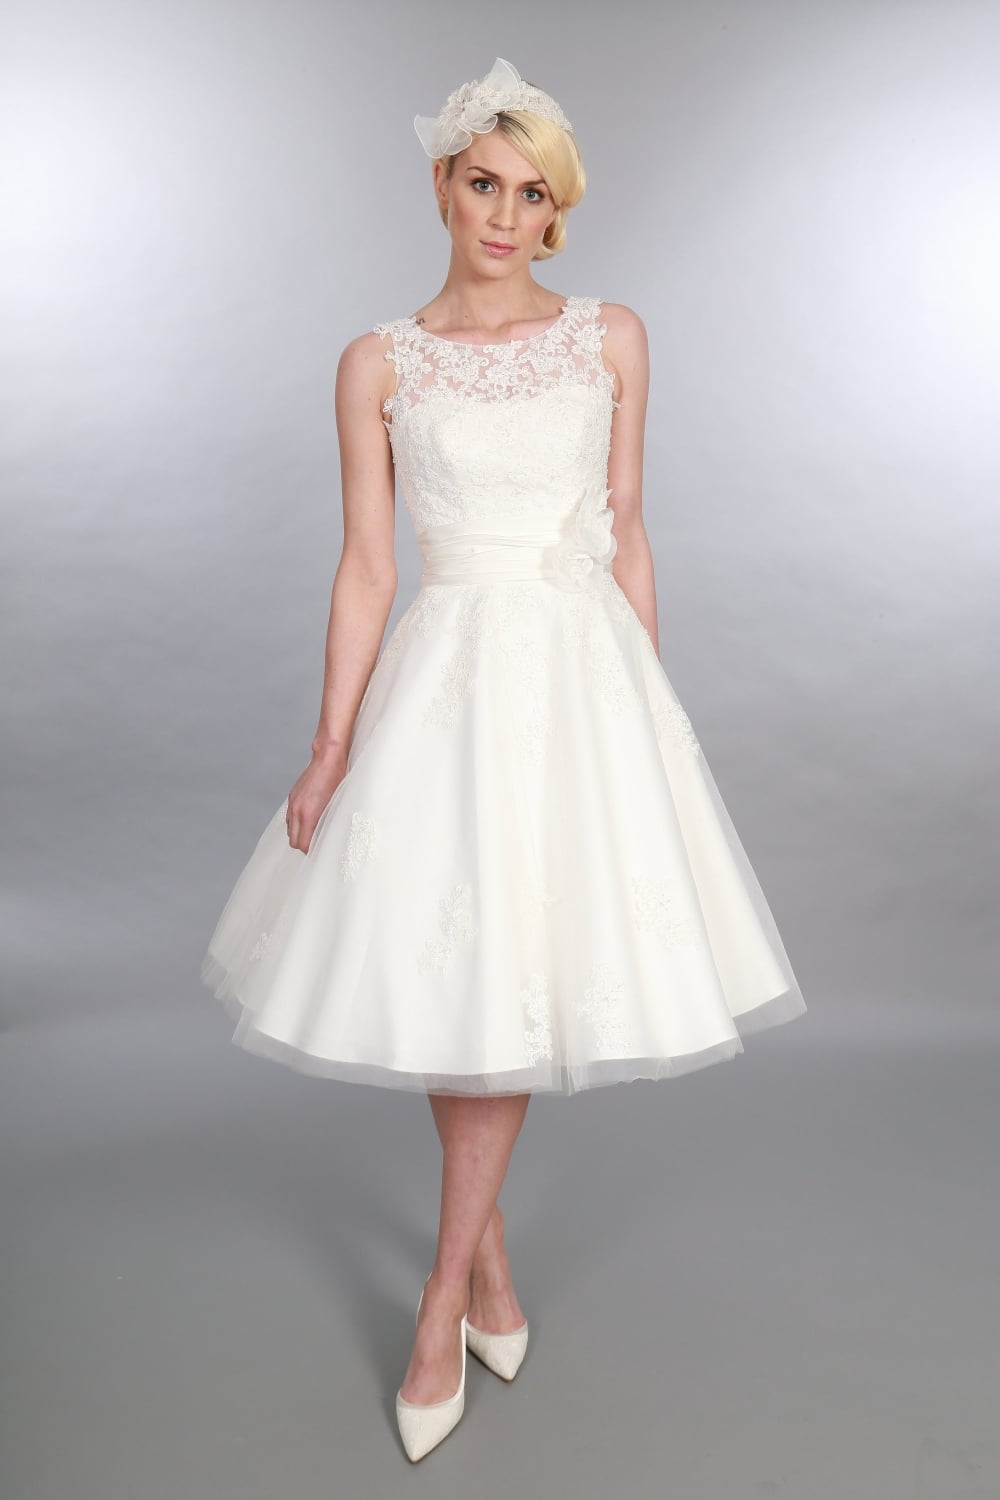 tea length vintage wedding dresses t length wedding dresses Ideas Simple Tea Length Wedding Dresses Bridesmaid With Sleeves Uk Womens Gowns And